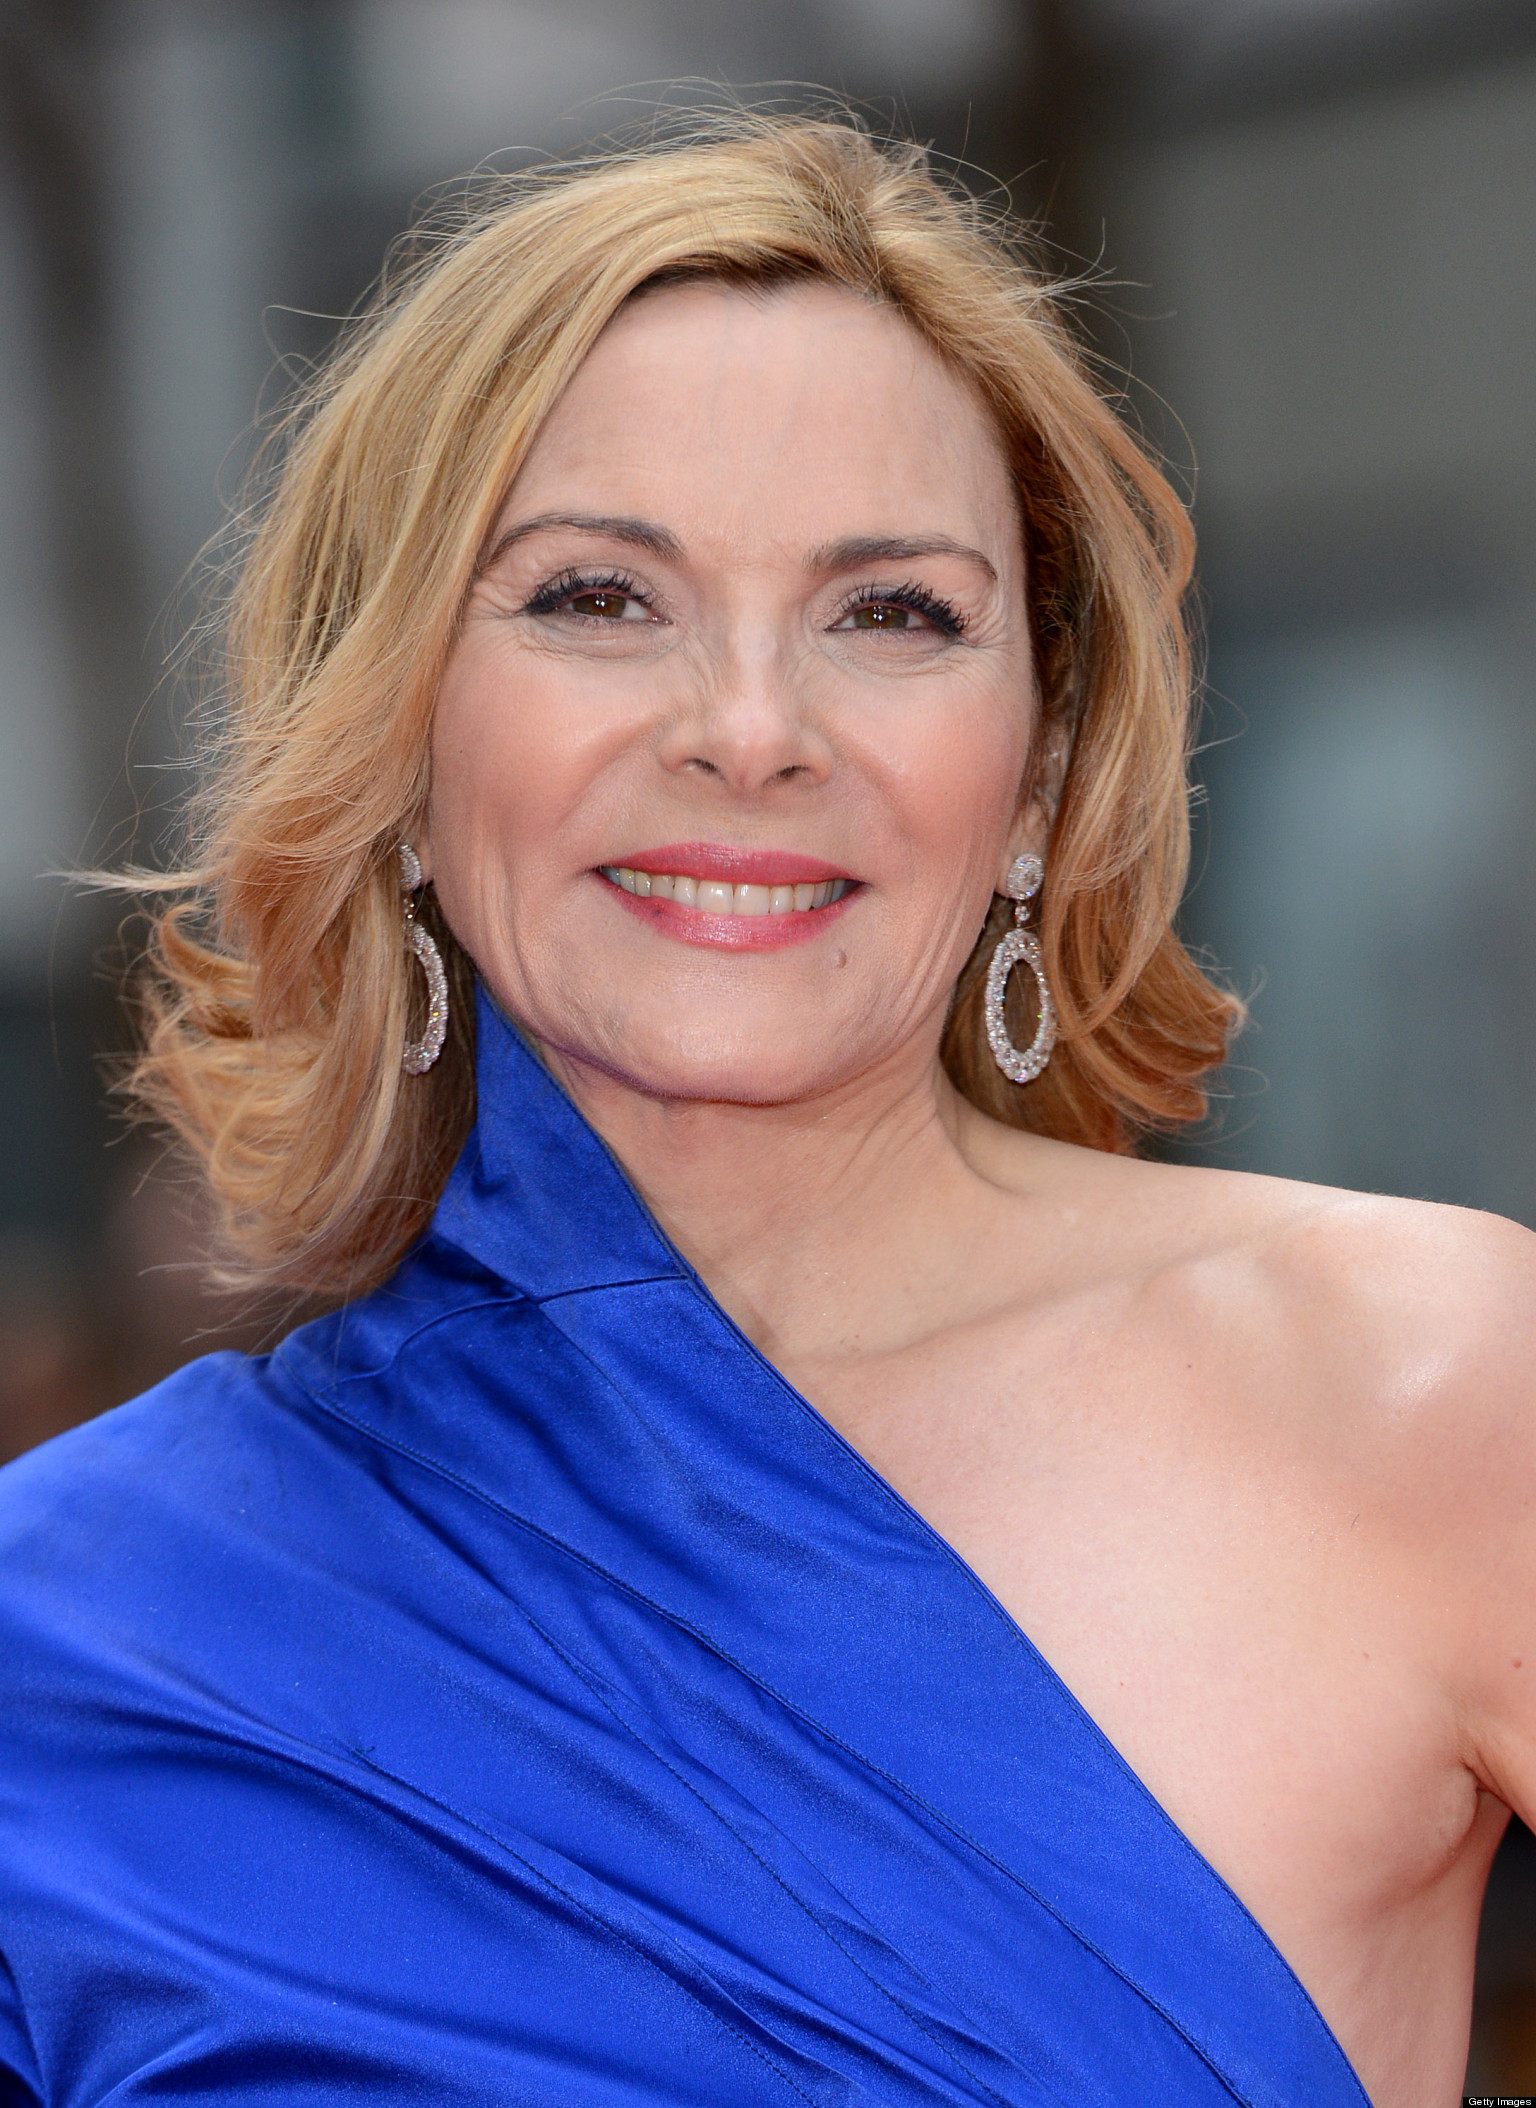 Kim Cattrall Makes a Good Point - You're Not 'Less' If You ... Kim Cattrall